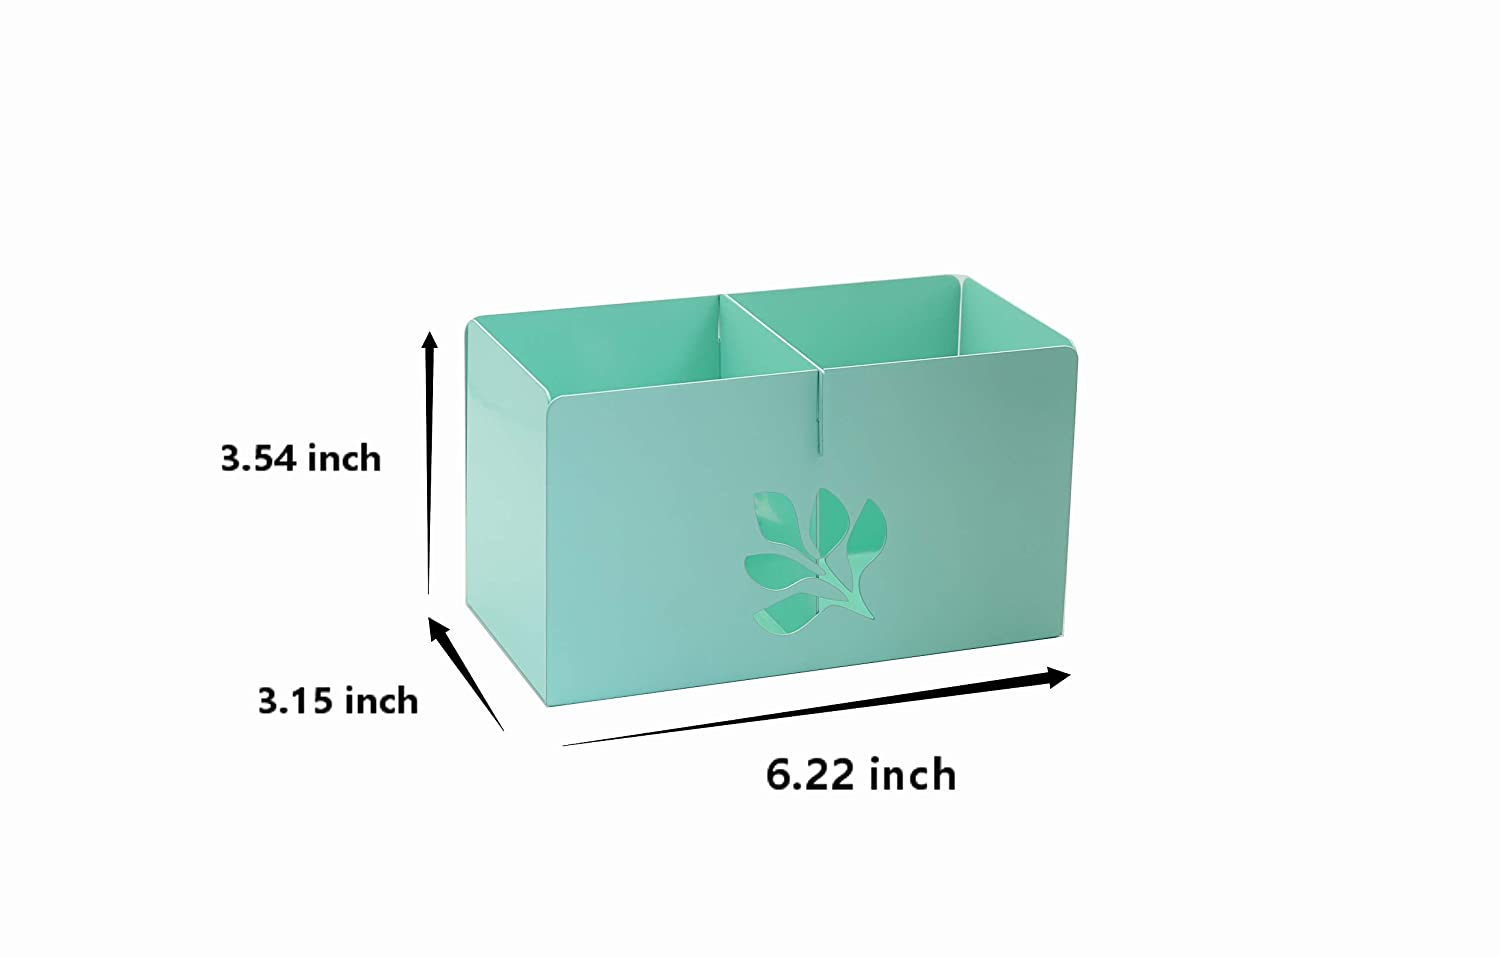 Yang s Choice 2.8 inch Succulent Plant Pots, Cactus Plant Container, Metal Nursery Pot for Home and Garden, Christmas Gift Idea, Pack of 2 Grid Green